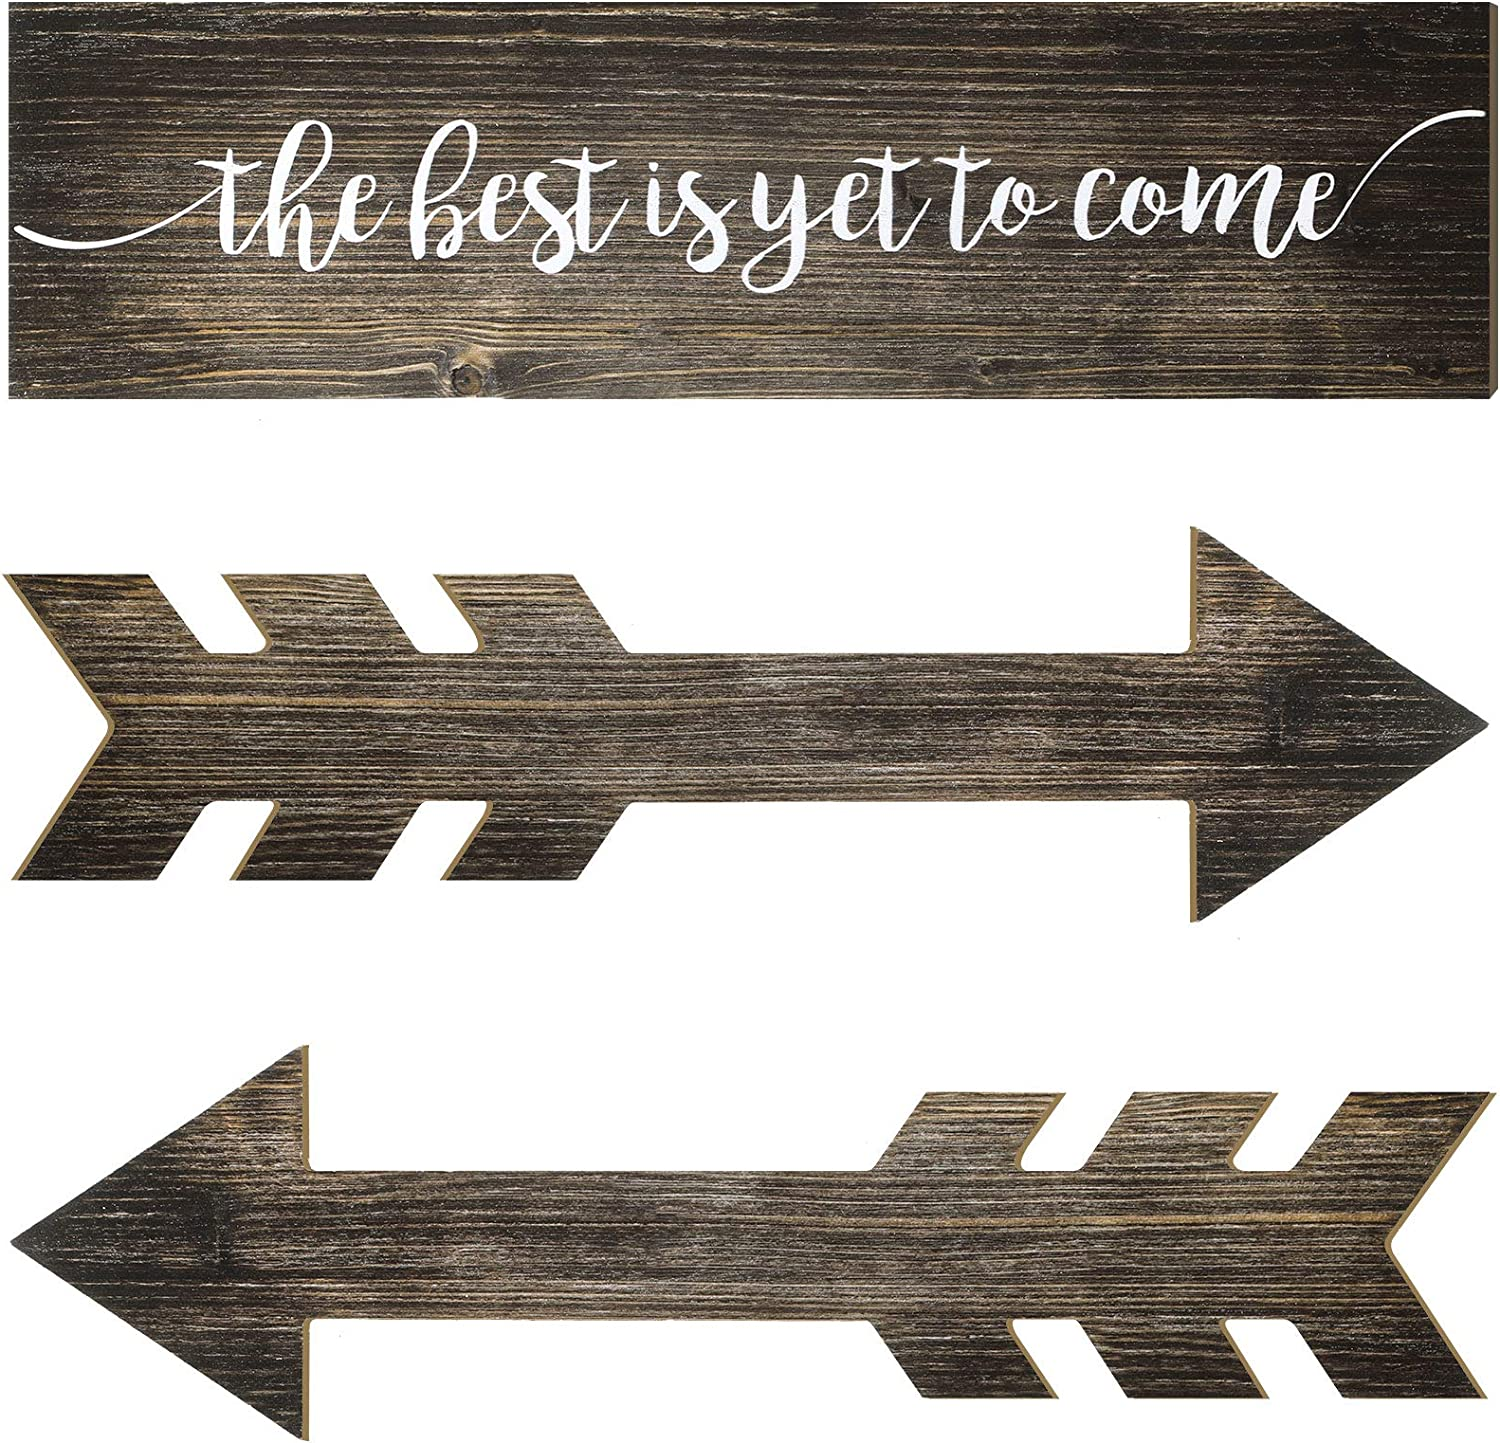 3 Pieces The Best is Yet to Come Wall Decor Rustic Wood Hanging Signs Wooden Arrow Plank Design Wall Decor for Farmhouse Party Decor